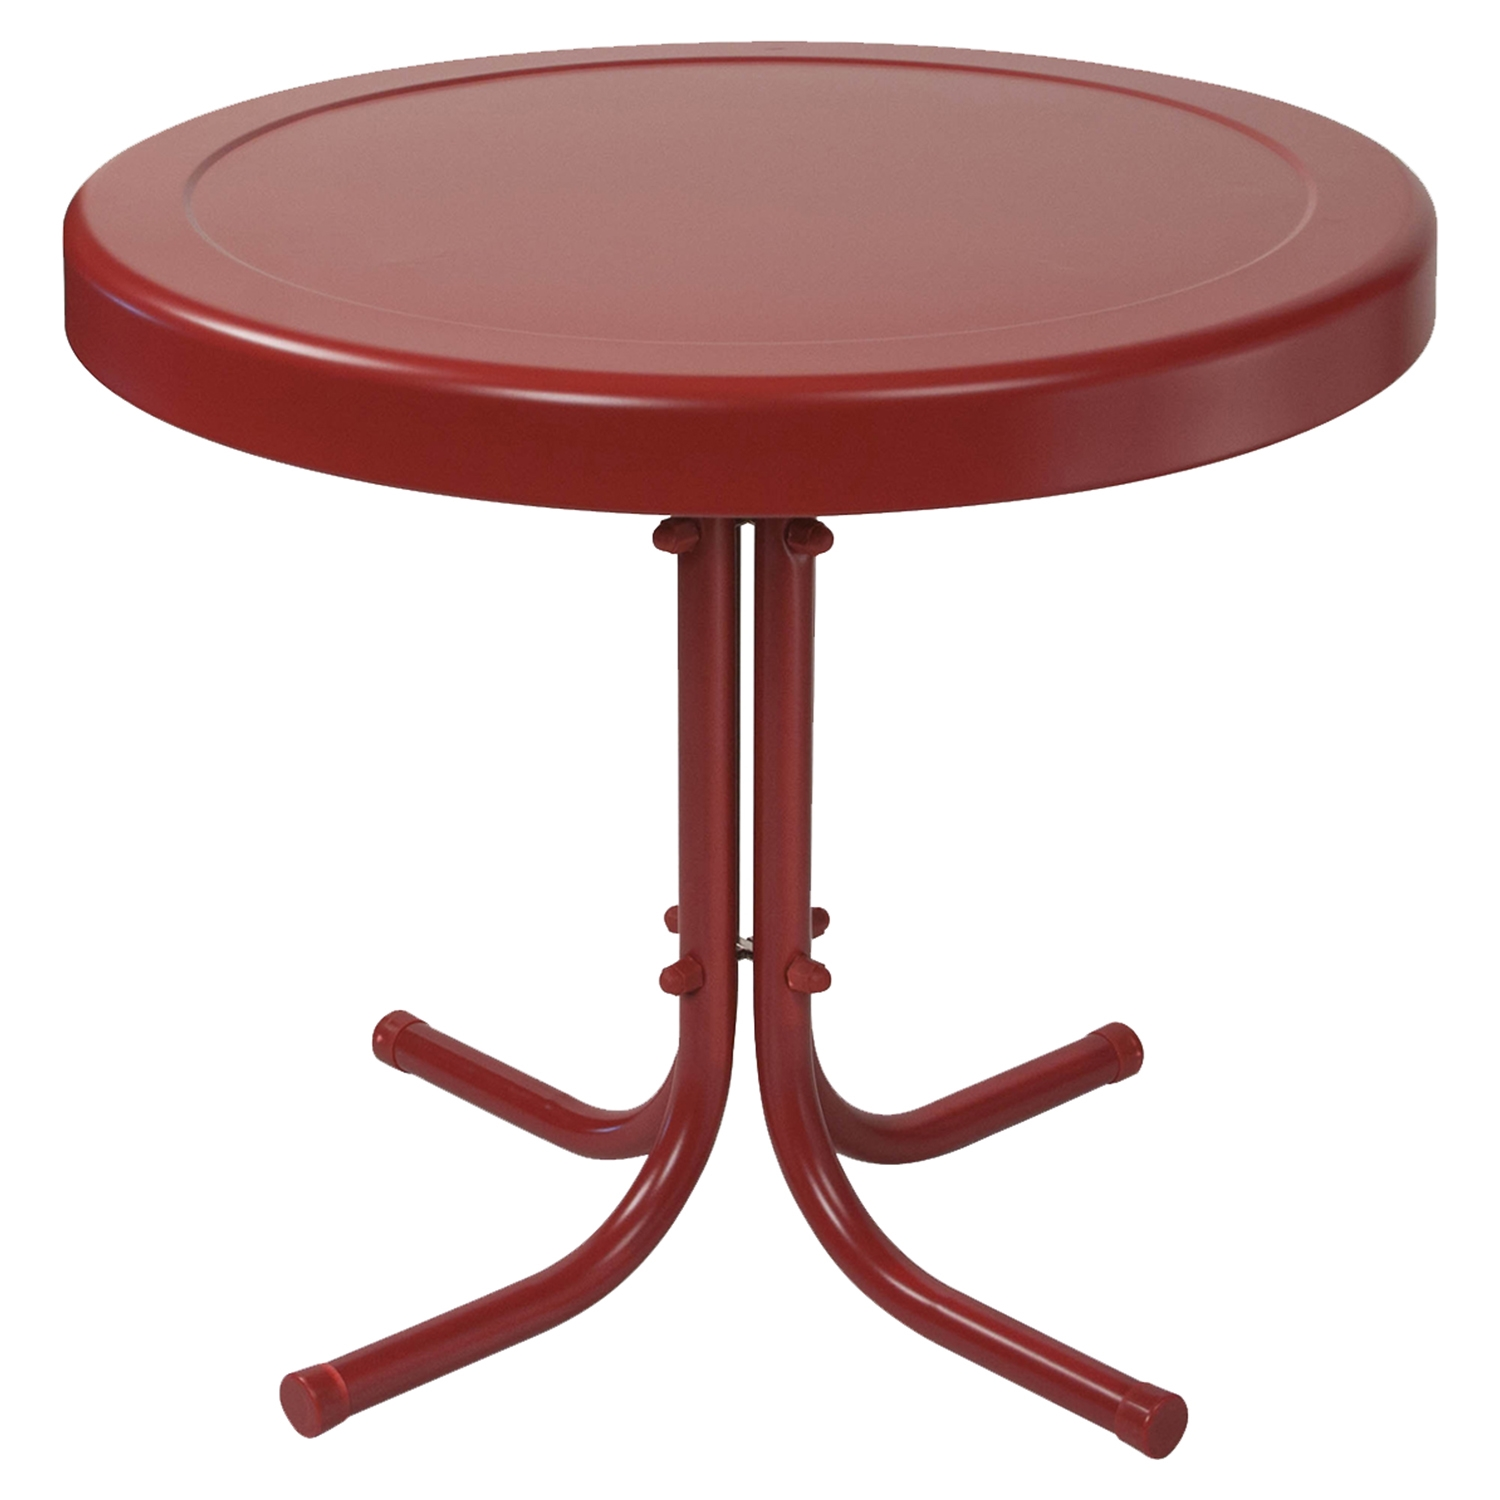 Retro Metal Side Table - Coral Red - CROS-CO1011A-RE